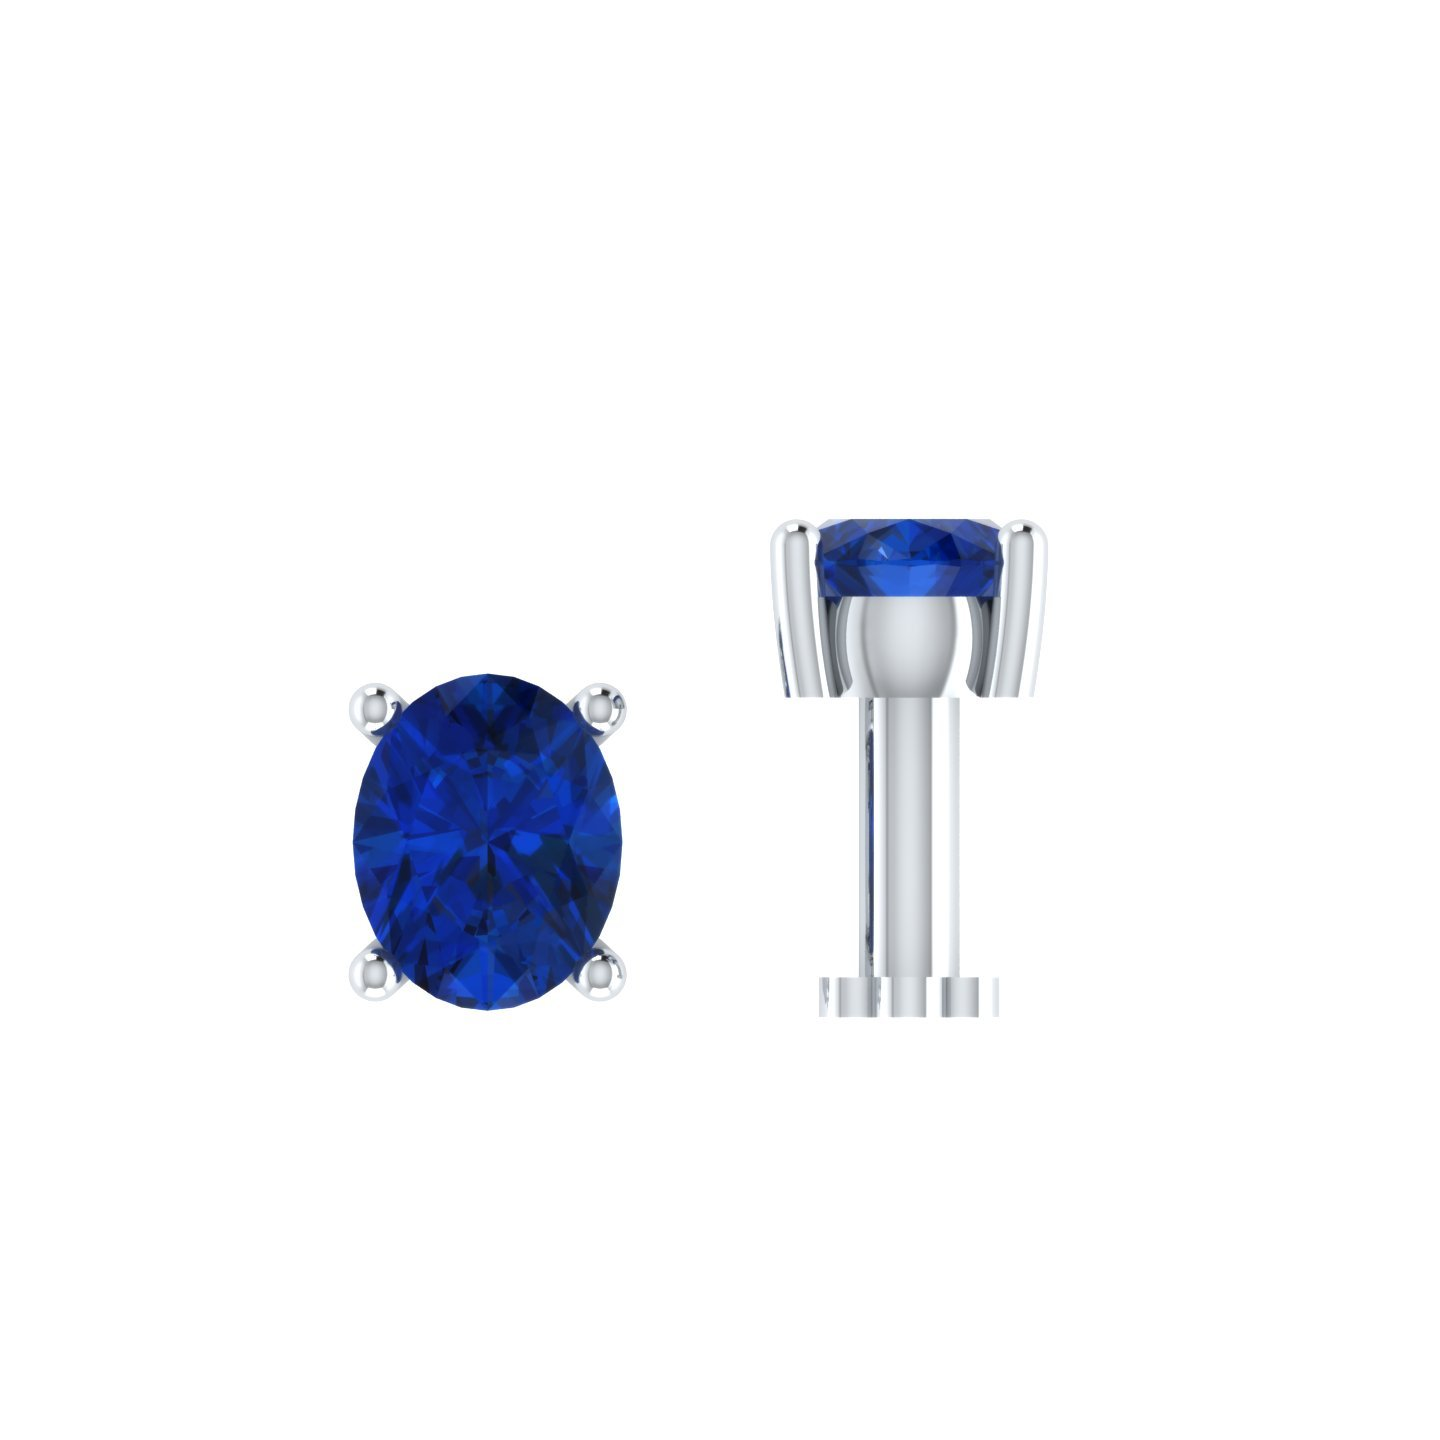 Silvercz Jewels 0.15 Ct Sapphire Solitaire Nose Bone 925 Sterling Silver Screw Stud Piercing Ring Pin